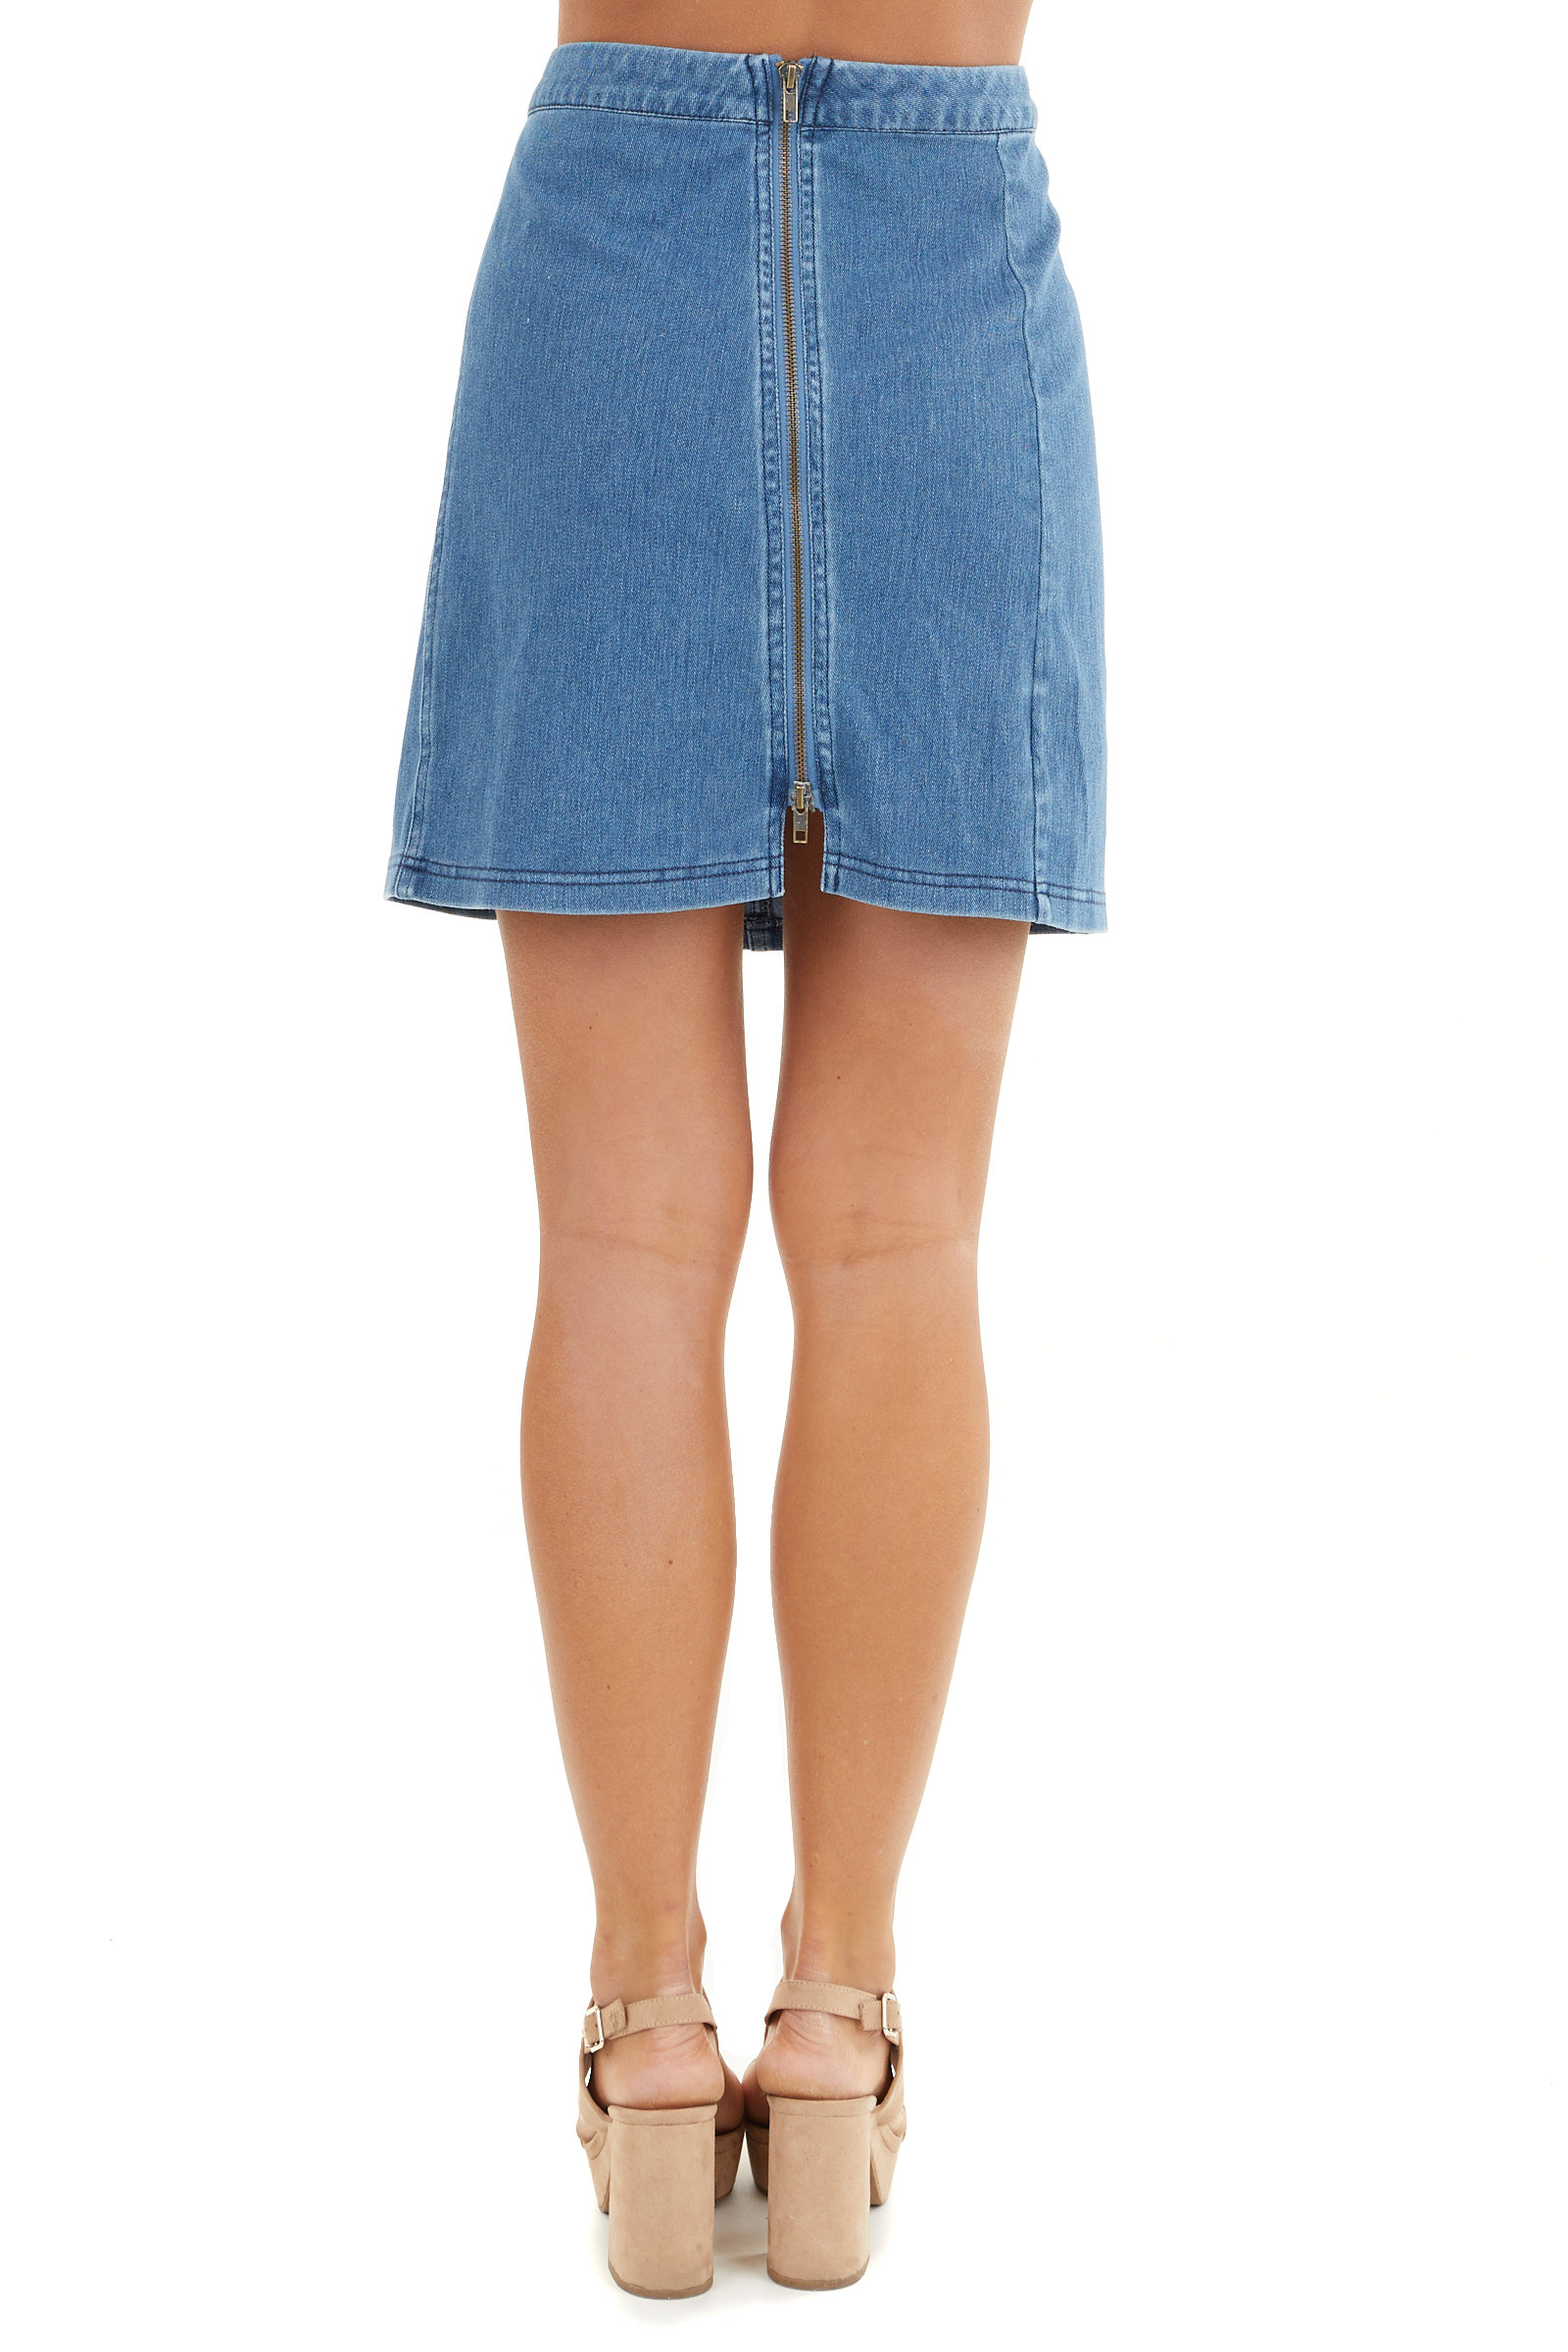 Denim Blue Zip Up Stretchy Mini Skirt back view